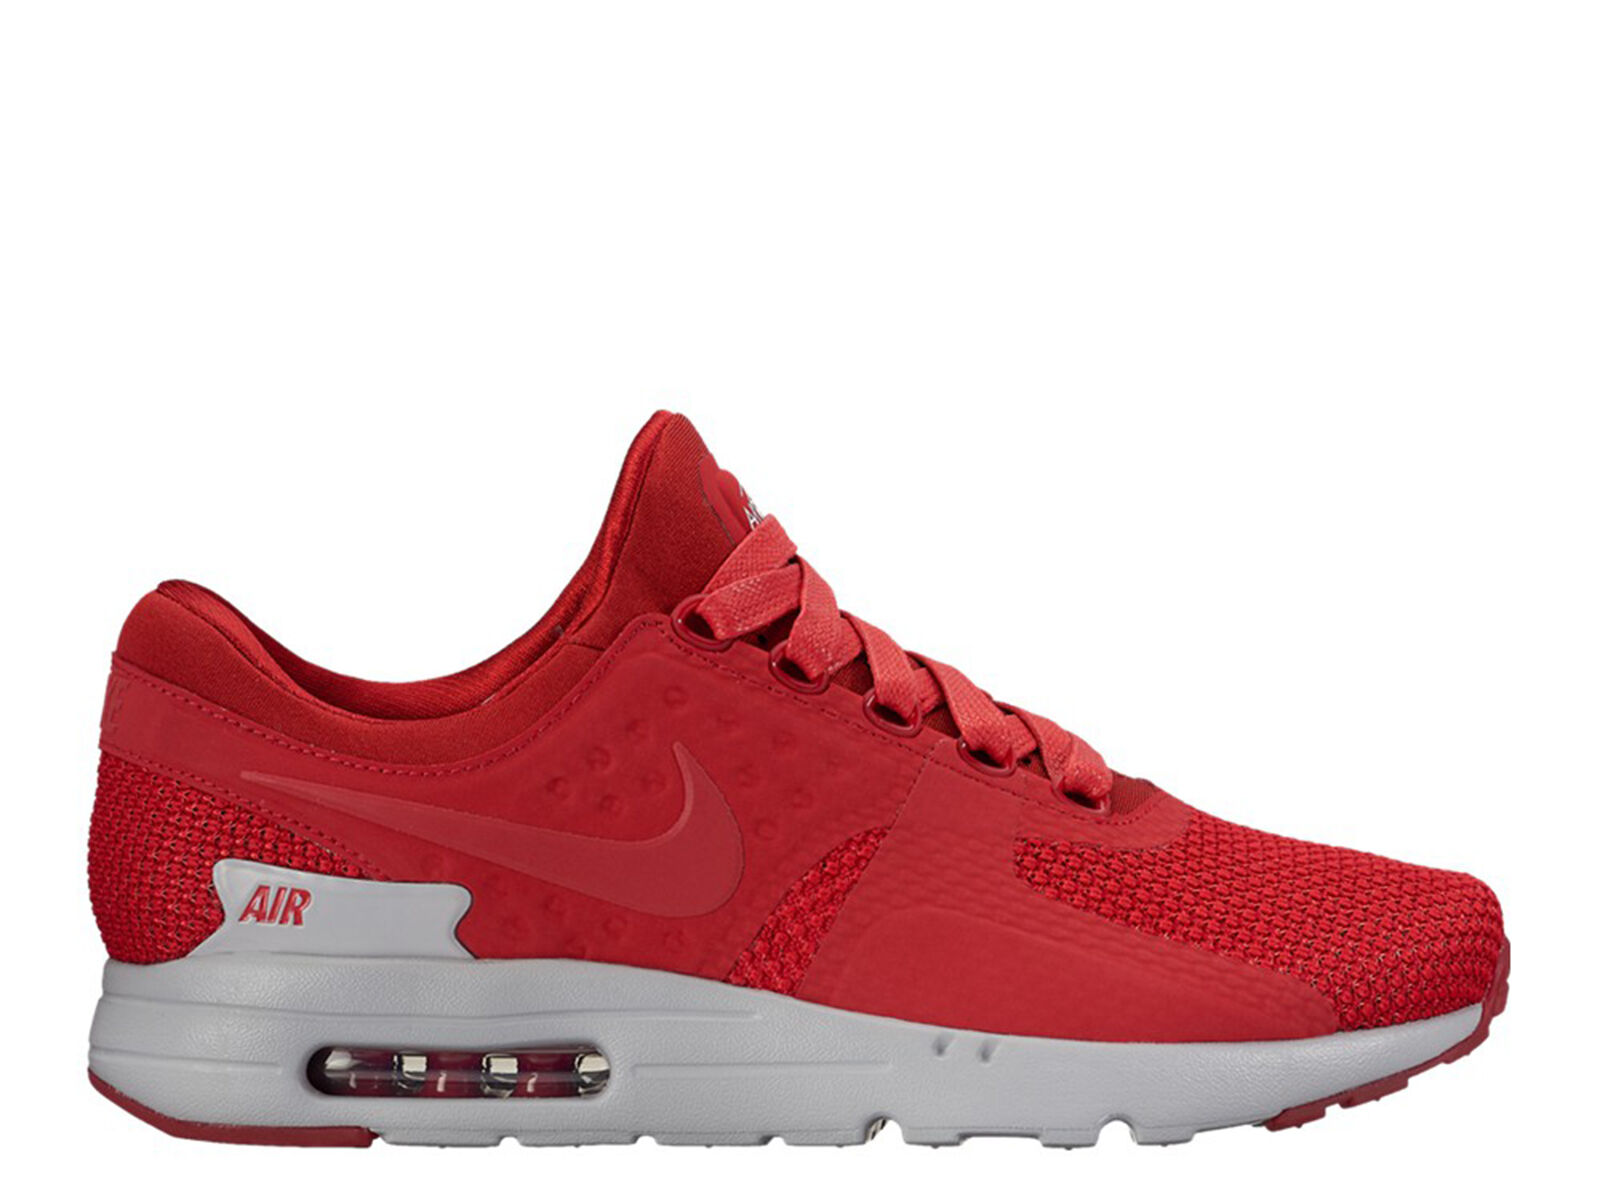 df042007162e3 Nike Air Max Zero Premium 0 men lifestyle sneakers NEW gym red 881982-600